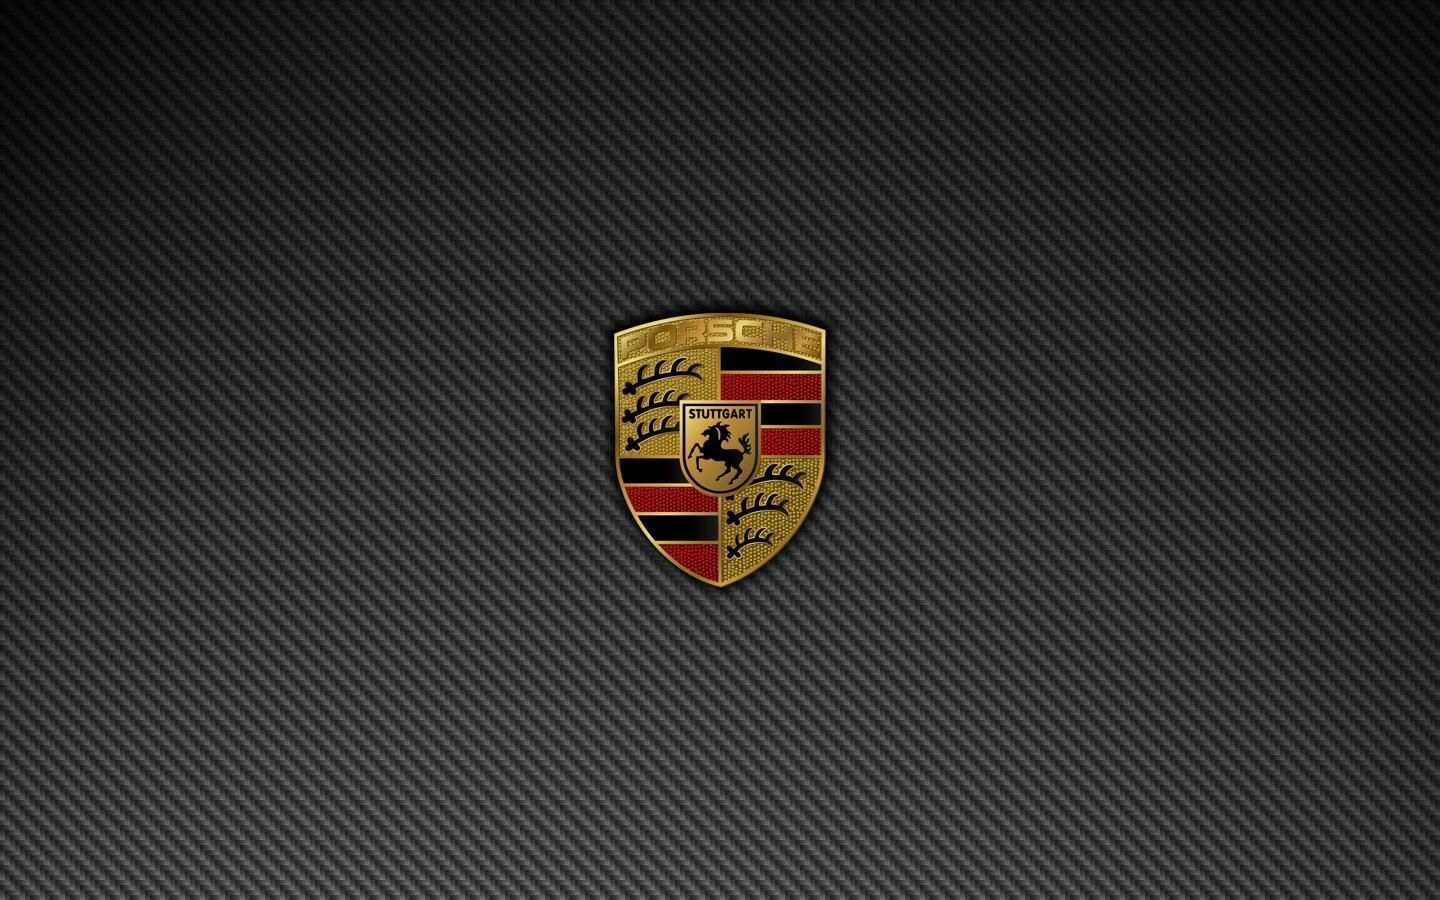 Porsche Car Full Hd Wallpapers Free Download 7 Porsche Logo Full Hd Wallpaper Wallpaper Images Hd